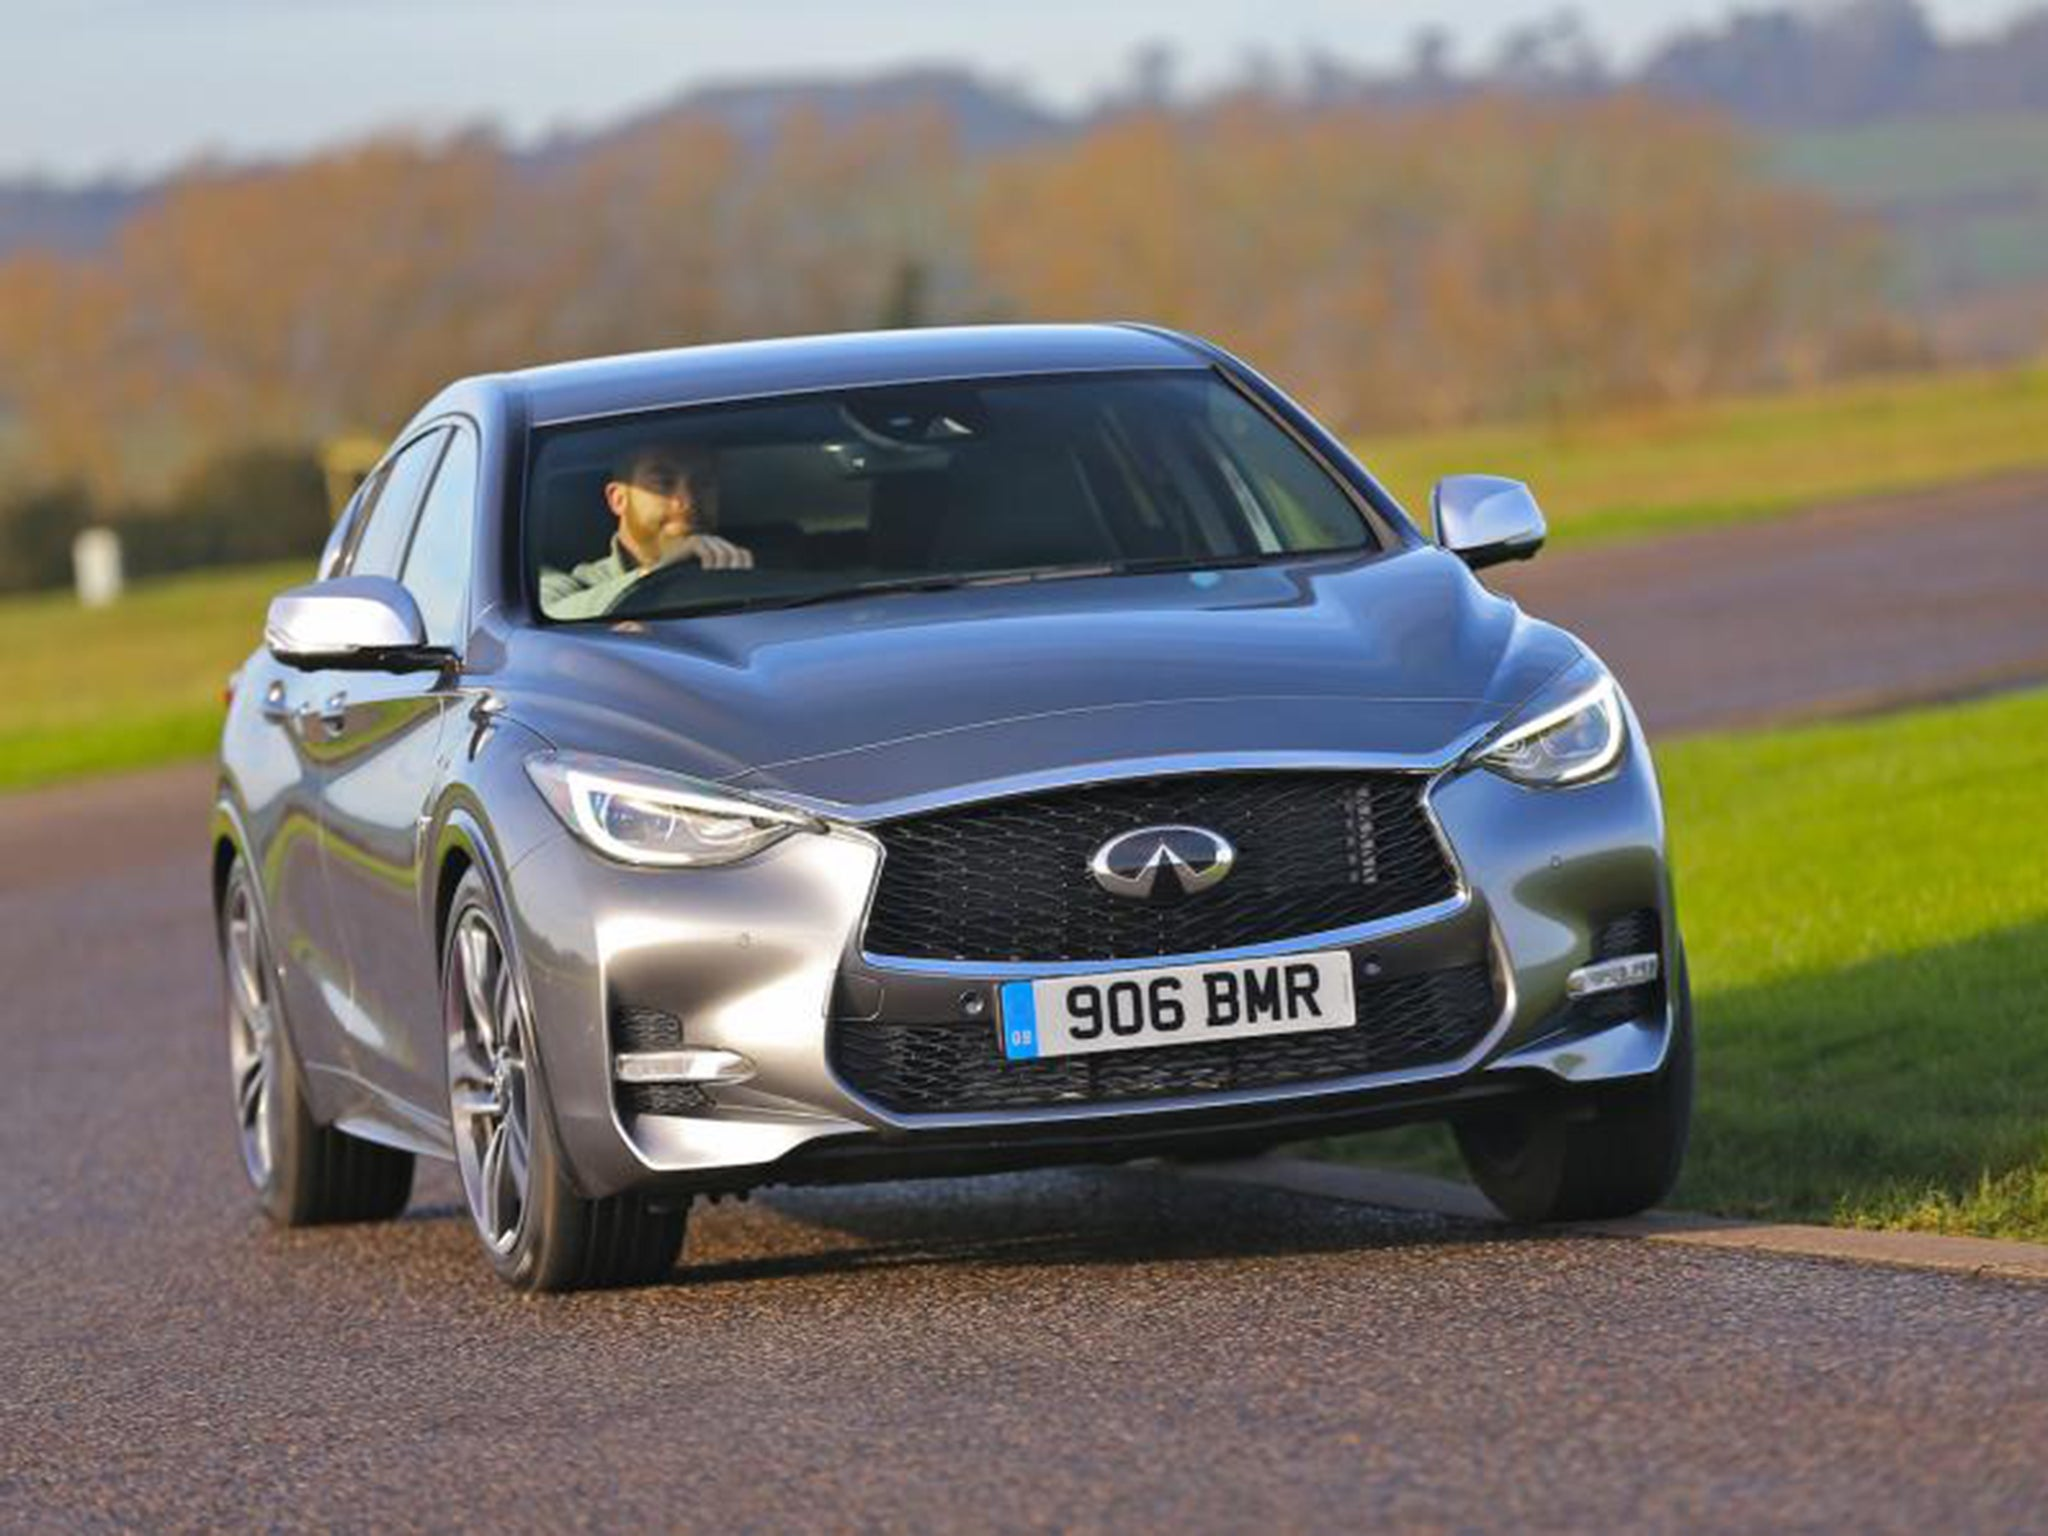 Infiniti q30 2 2d awd car review nissan luxury brand takes on bmw and audi the independent